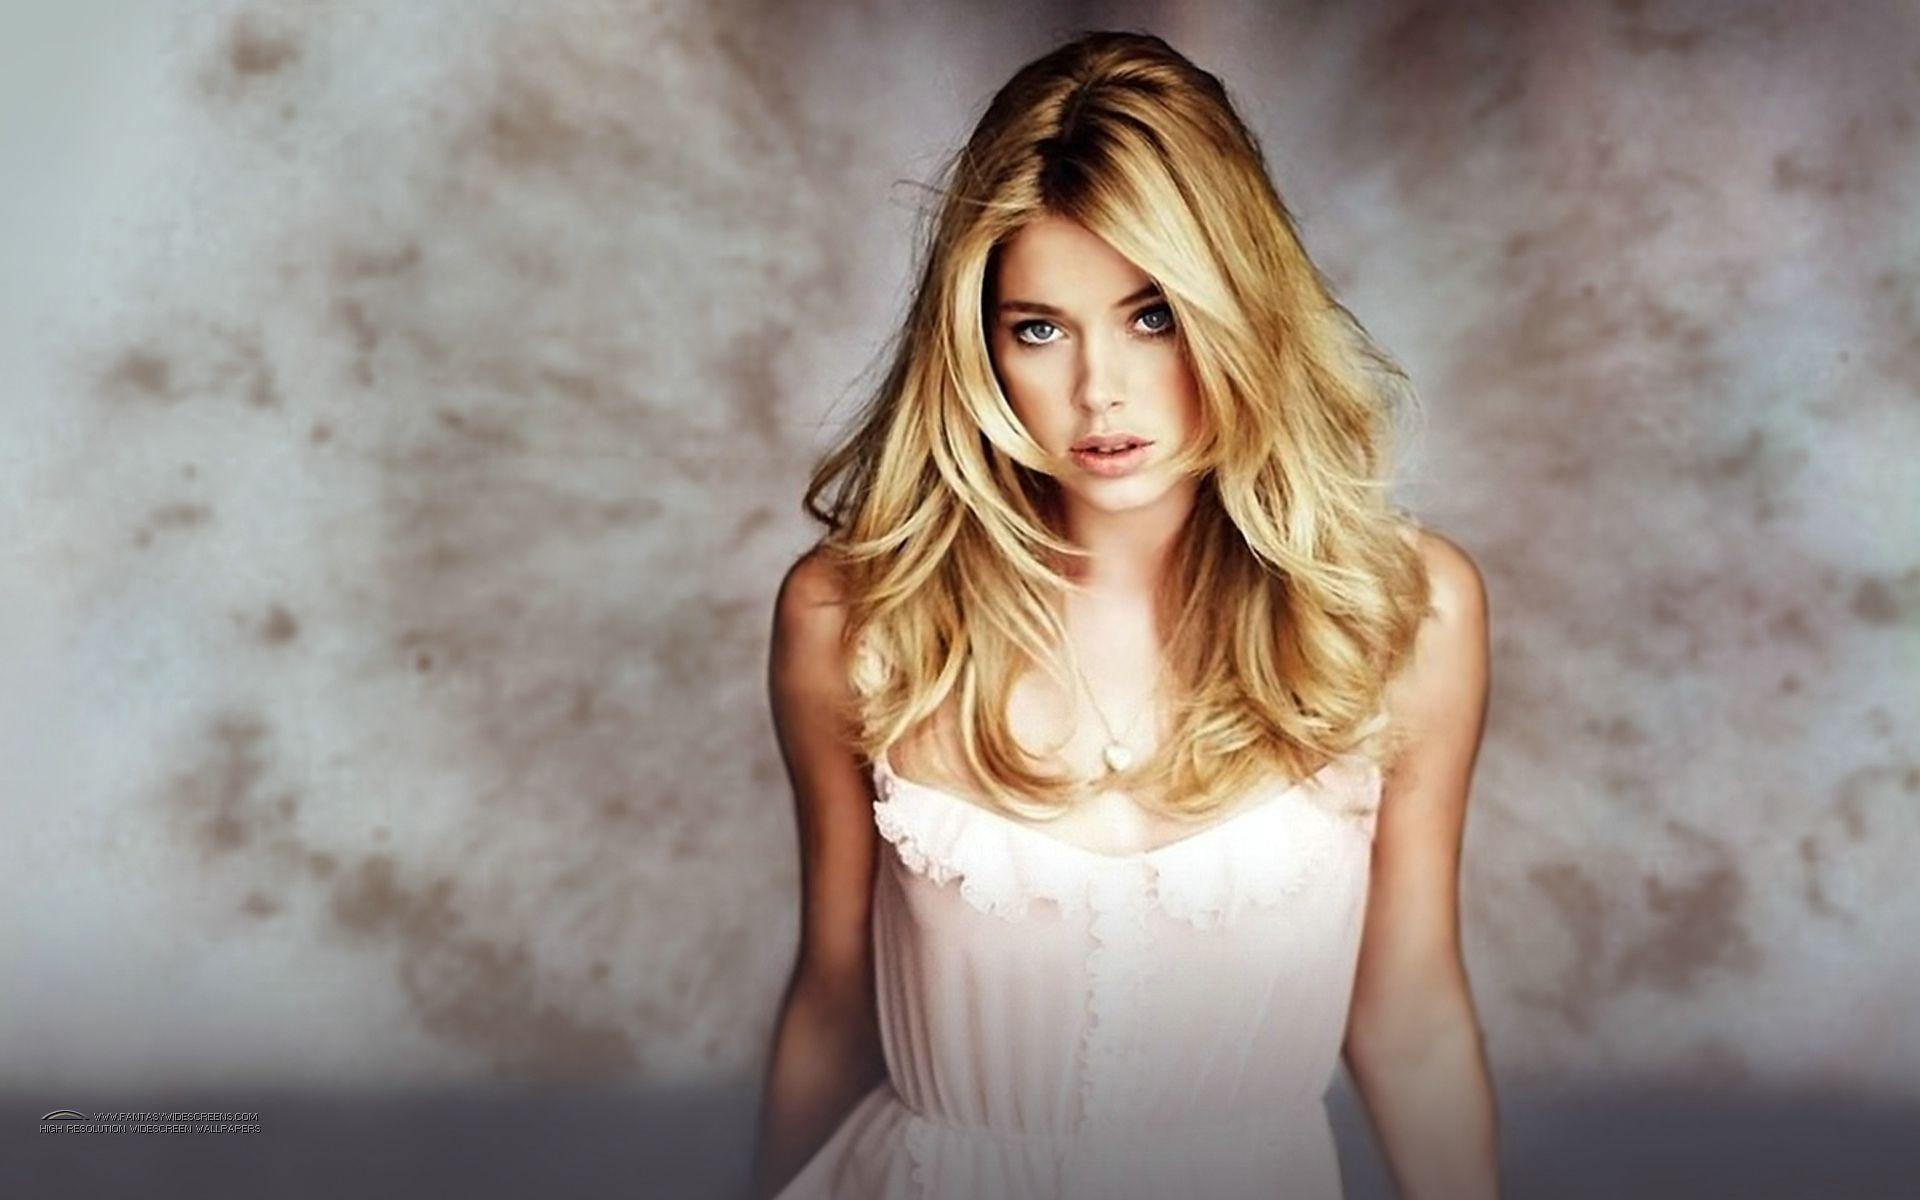 Images For > Doutzen Kroes Wallpaper 1080p